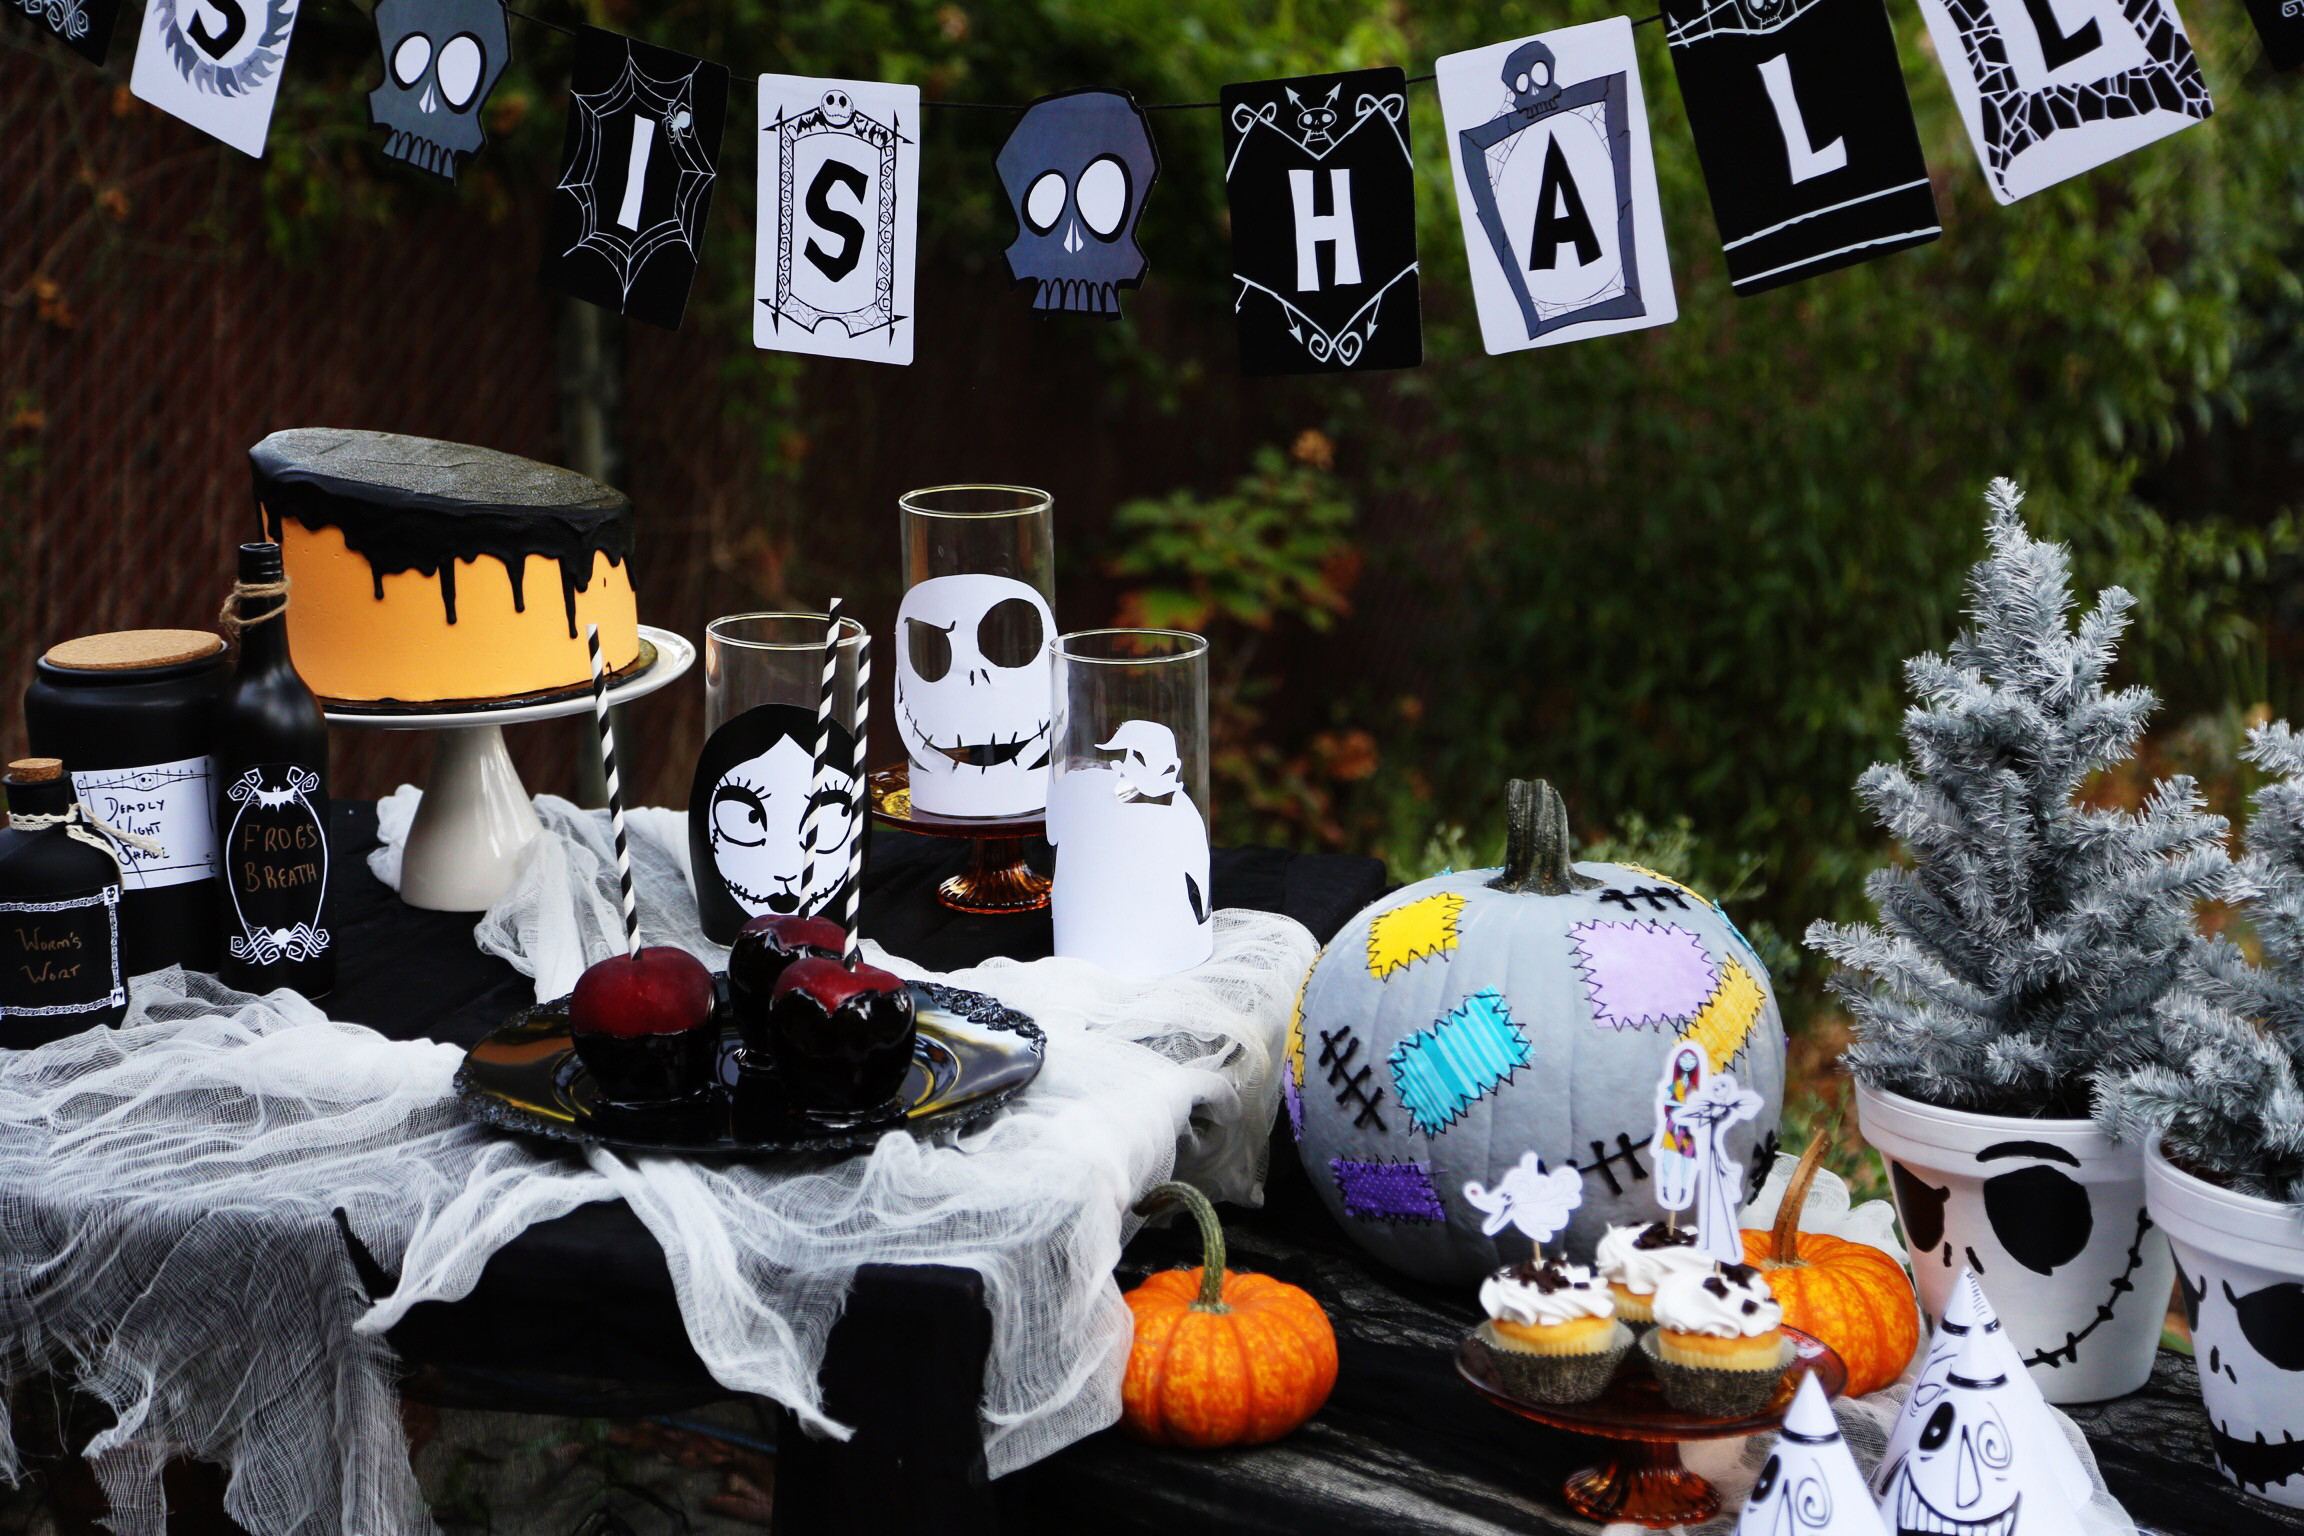 Best ideas about Nightmare Before Christmas Birthday Decorations . Save or Pin The Nightmare Before Christmas Party Now.